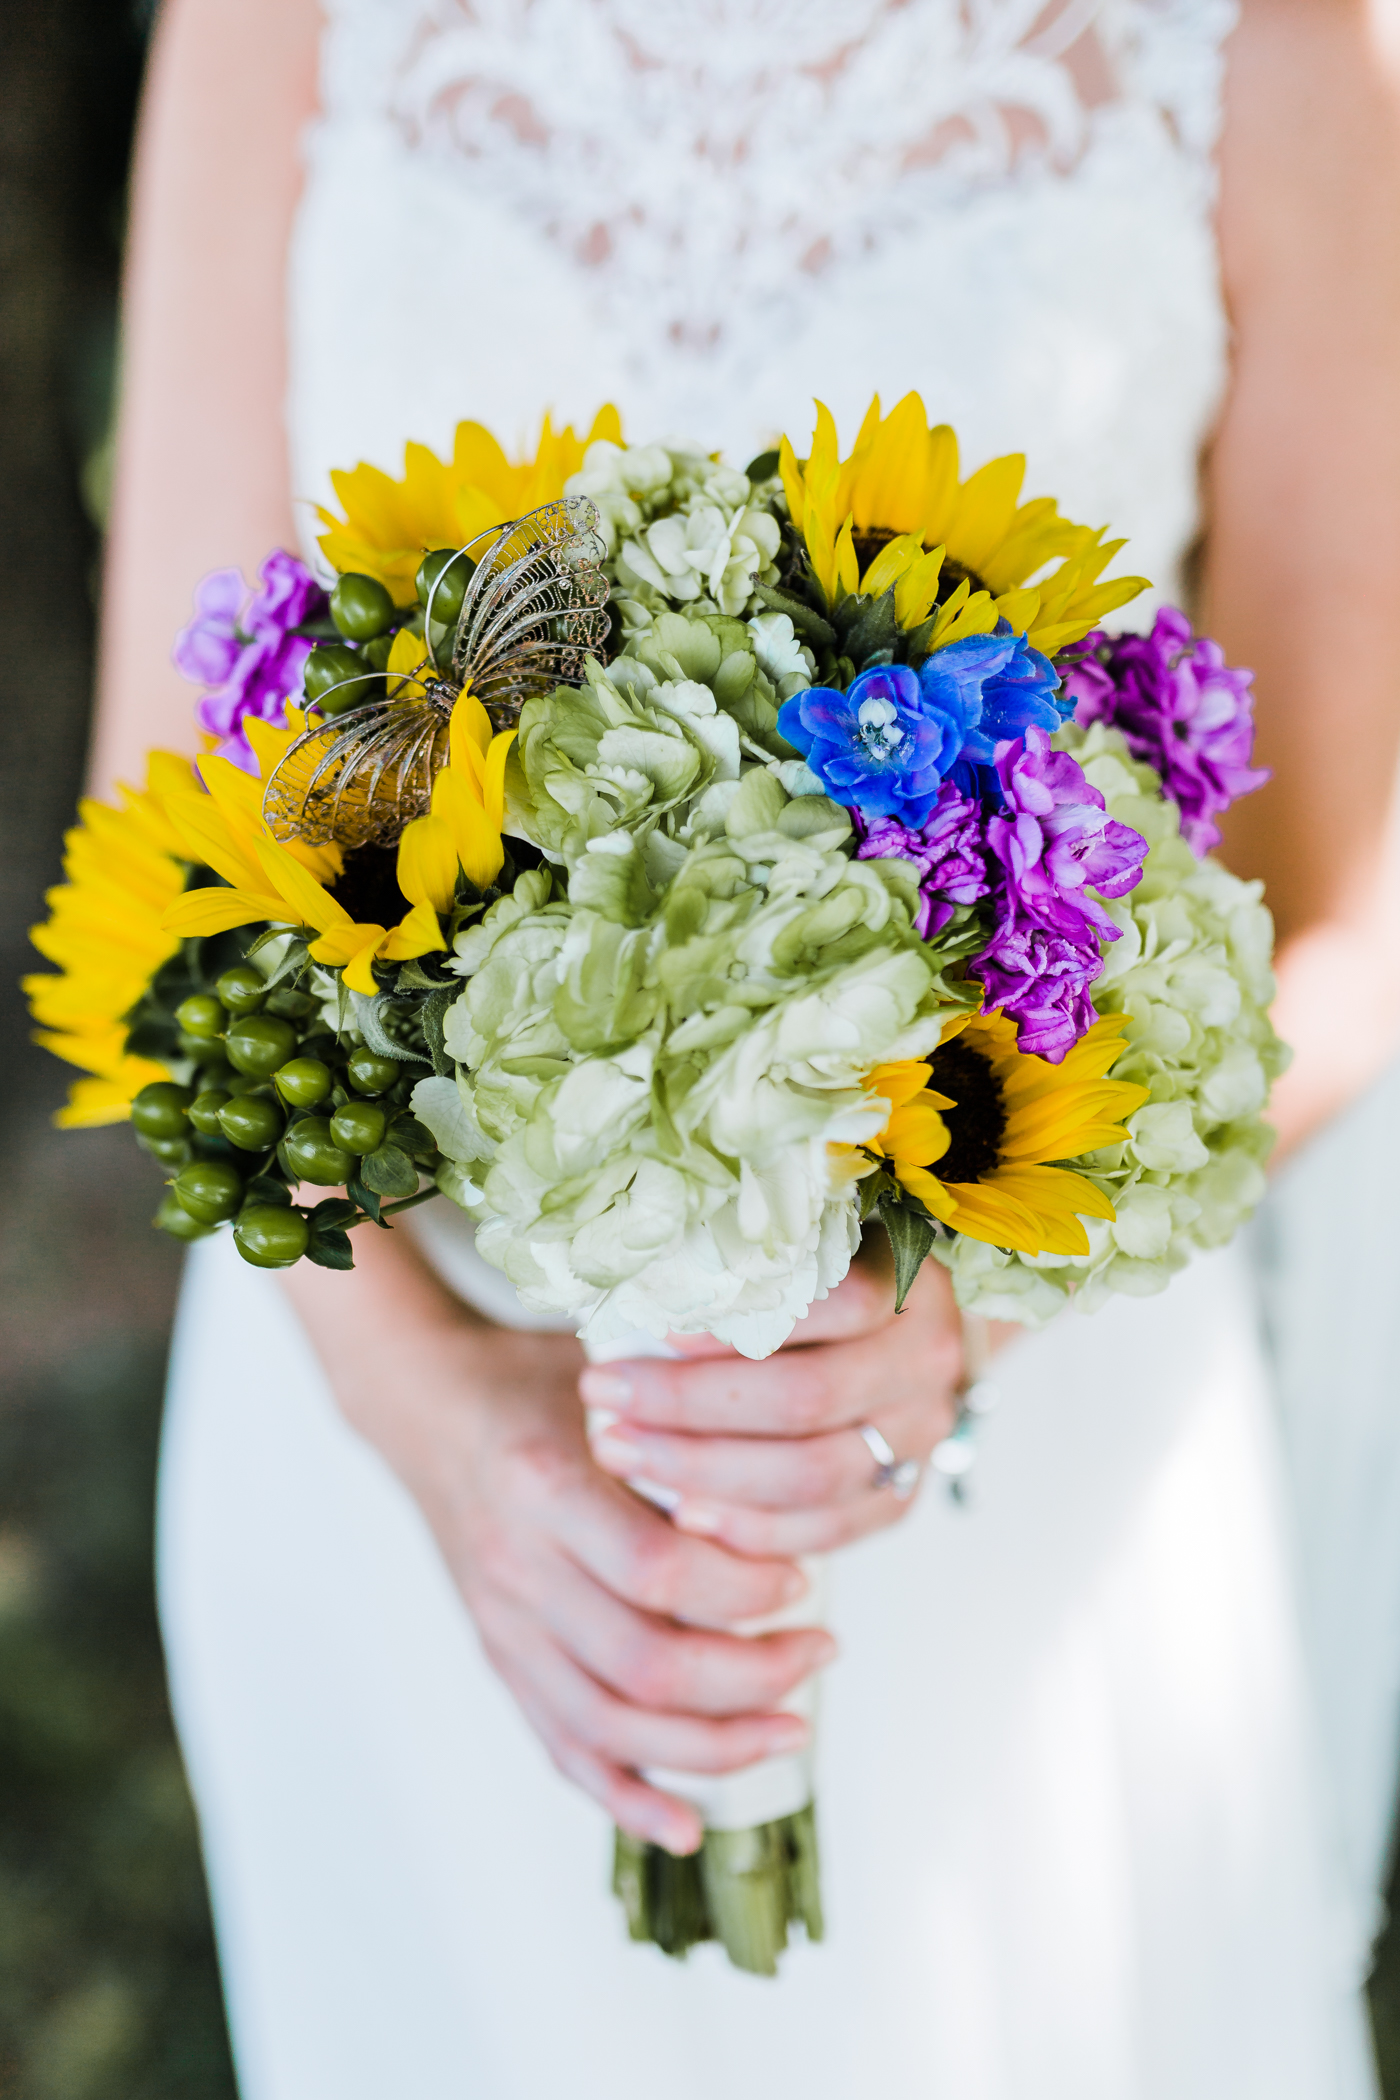 memorial butterfly in brides bouquet to remember her grandmother - maryland wedding